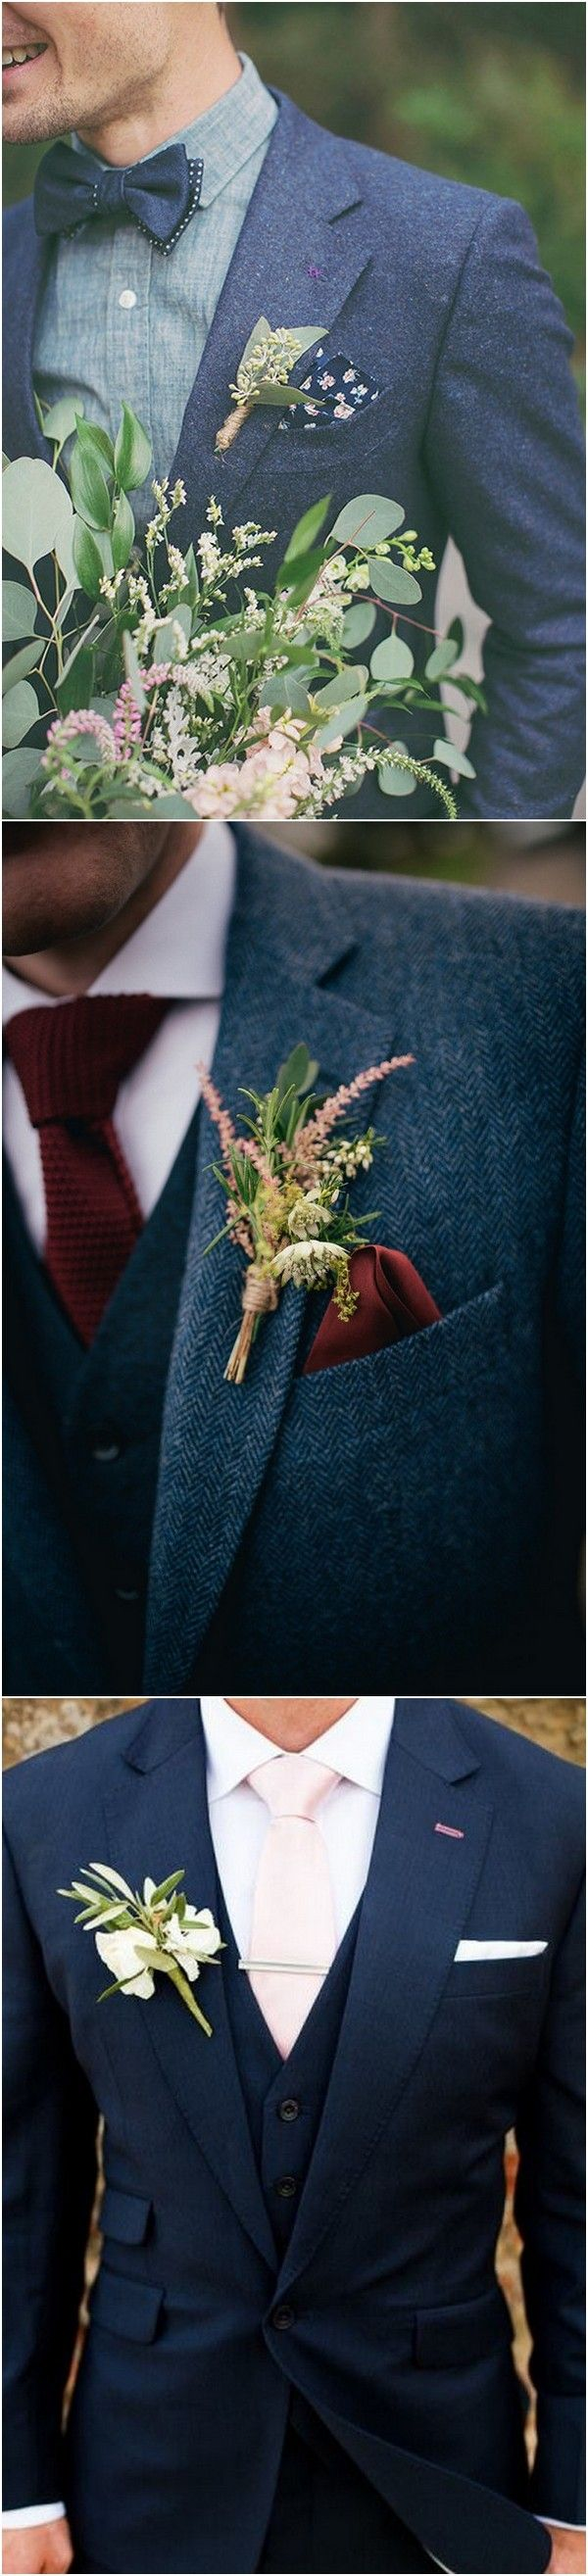 wedding groom suit ideas